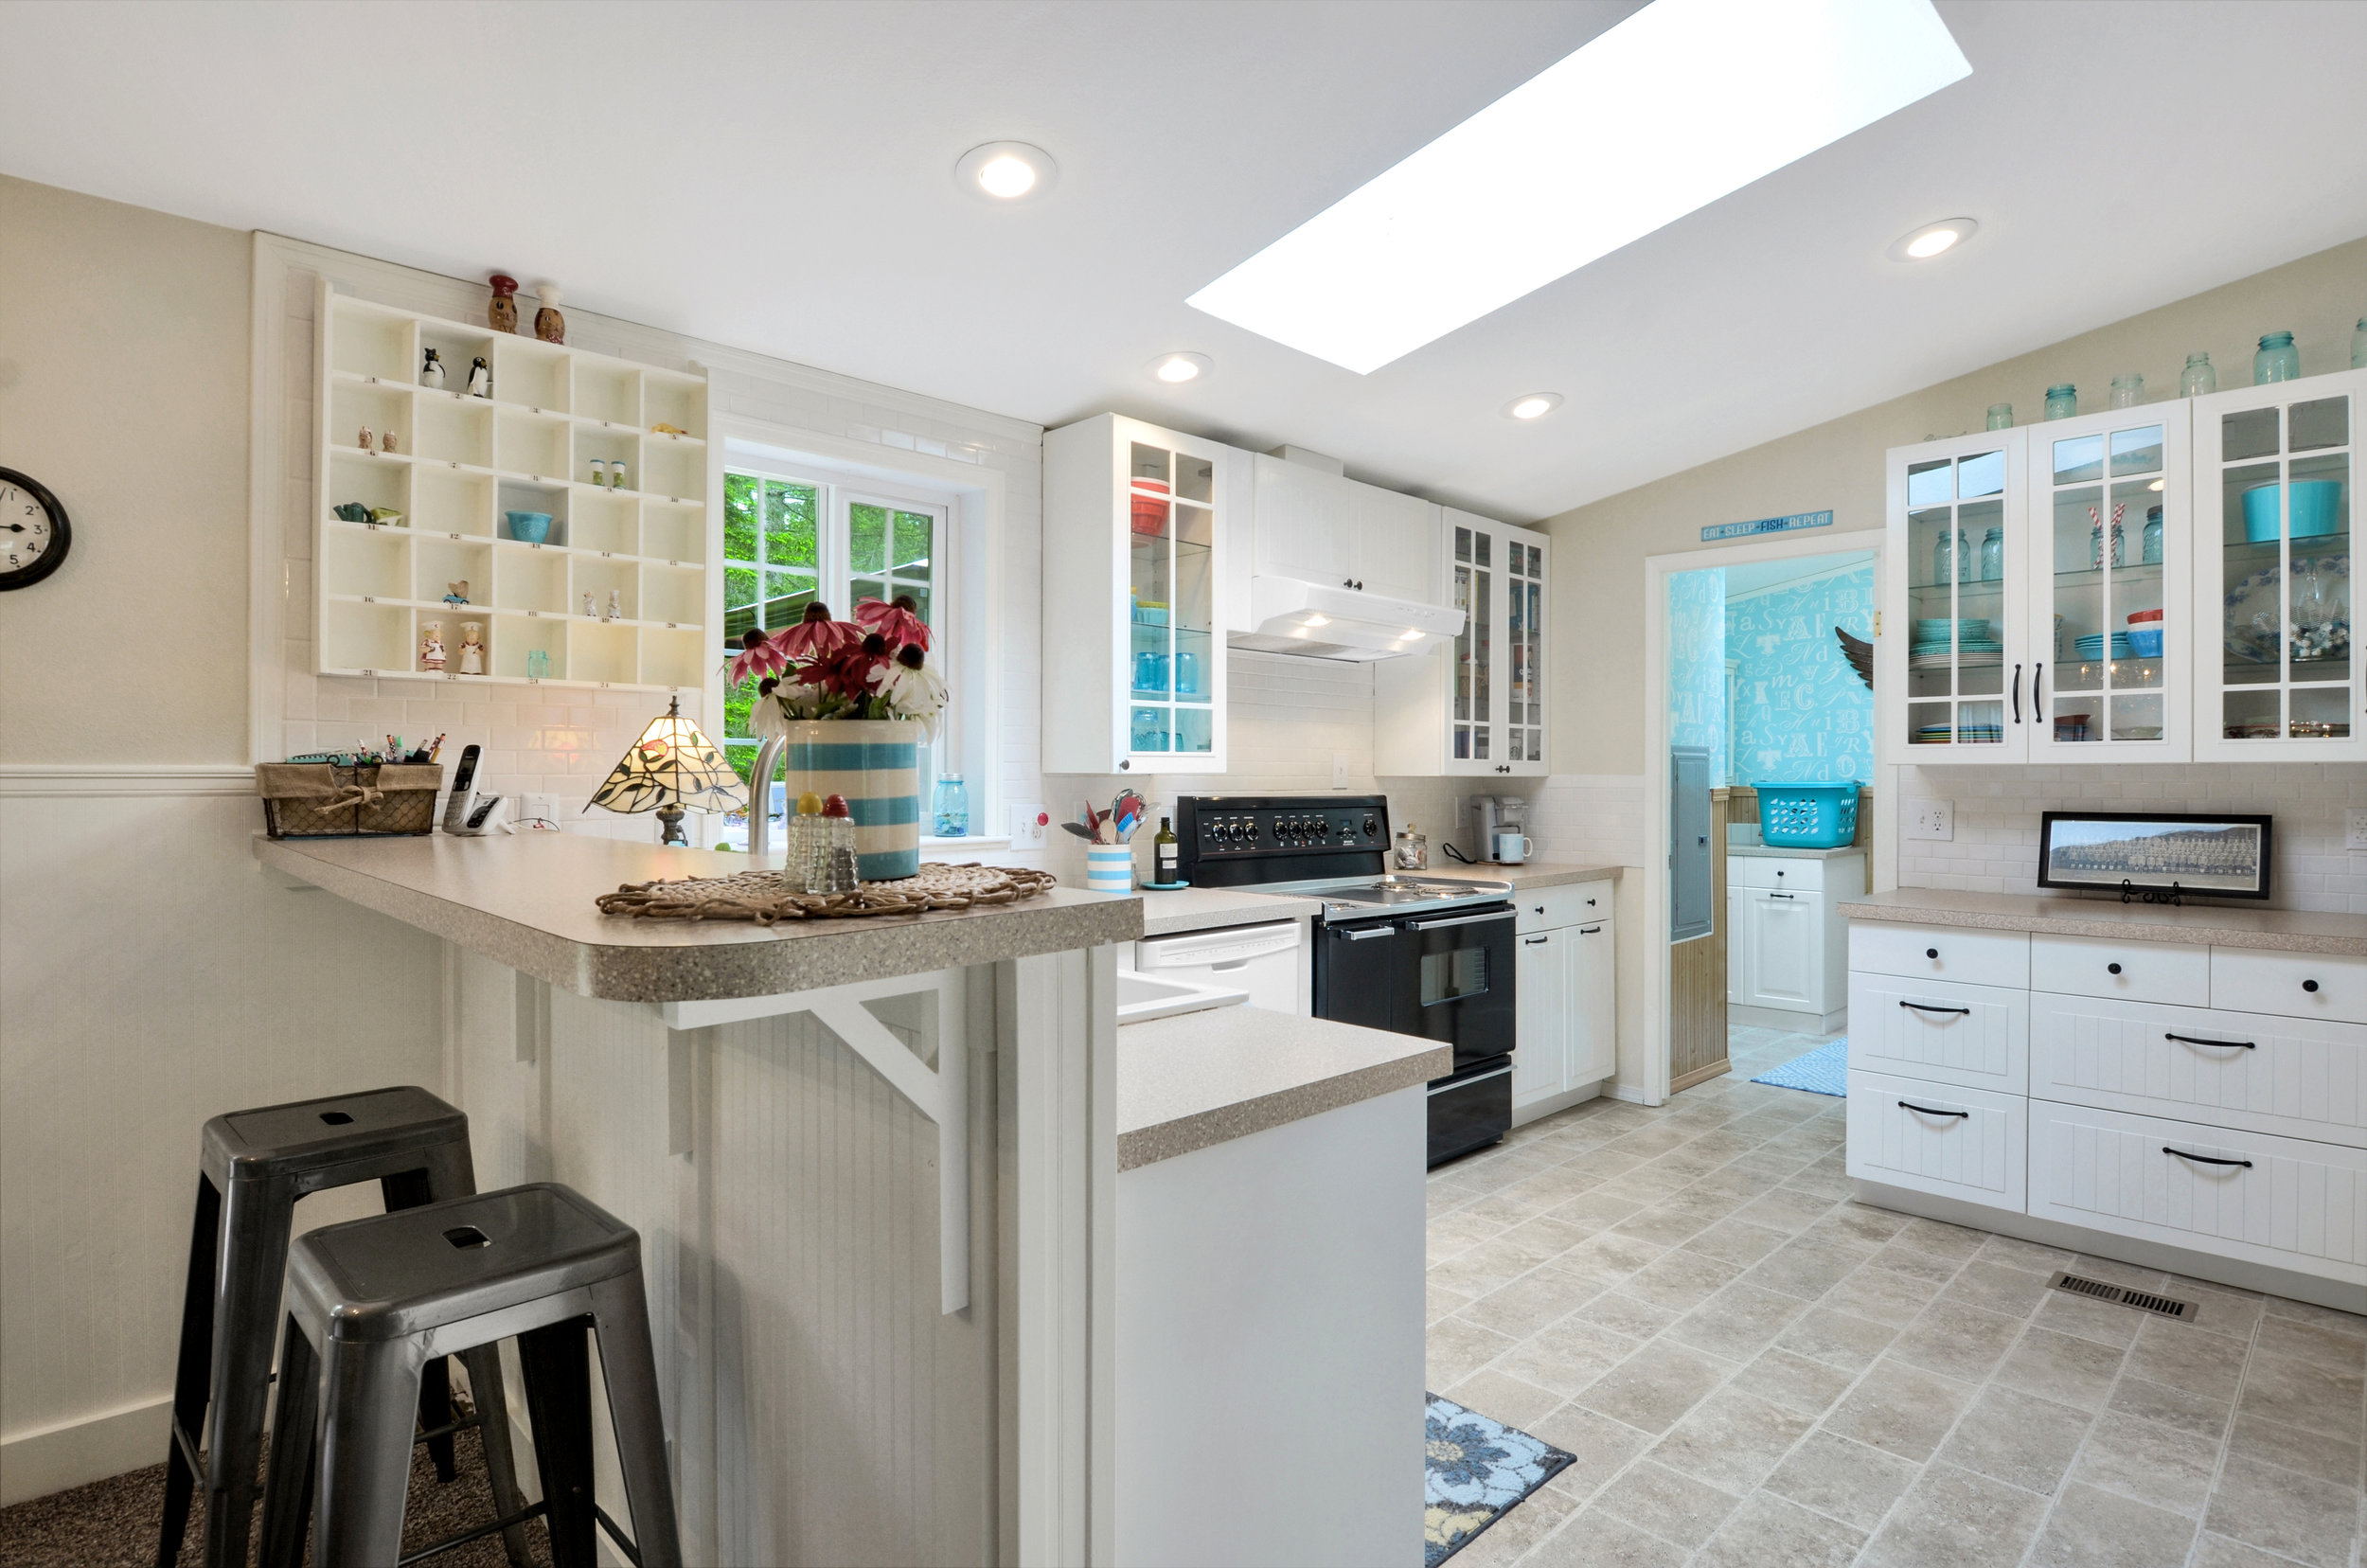 This kitchen is a beauty. With a window overlooking the back yard, a farmhouse sink, mini subway tile backsplash, and easy access to either the laundry room or the living and dining area. Pull a stool up to the kitchen bar counter for breakfast or a chat with the cook. This kitchen is all redone with a bright skylight, fresh counters, new cabinets and appliances (except for the stove which is a wonderful wide range with a griddle and warming oven!).